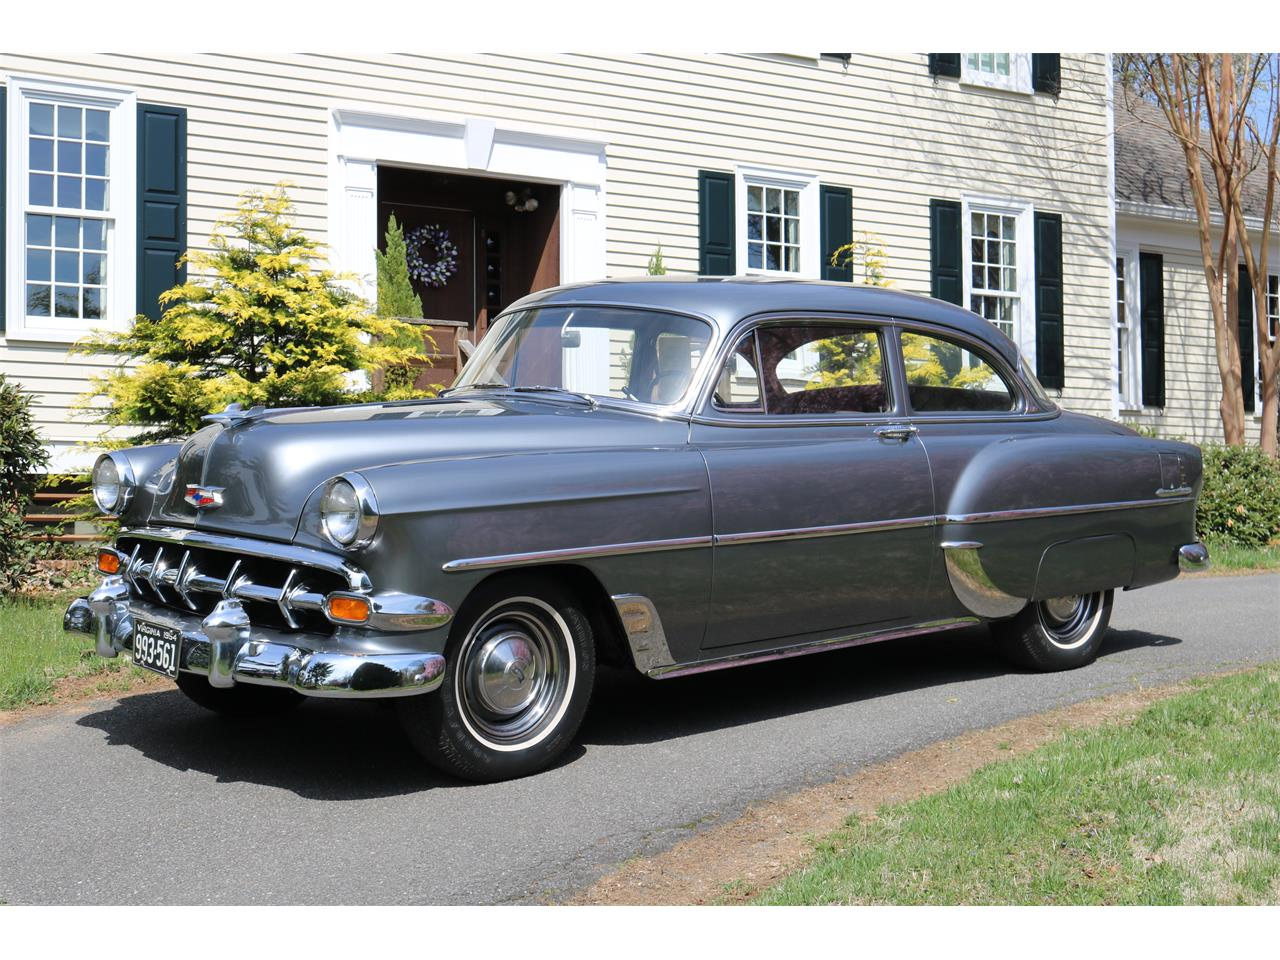 Large Picture of Classic '54 Chevrolet Bel Air located in Winchester Virginia Offered by a Private Seller - Q5TA